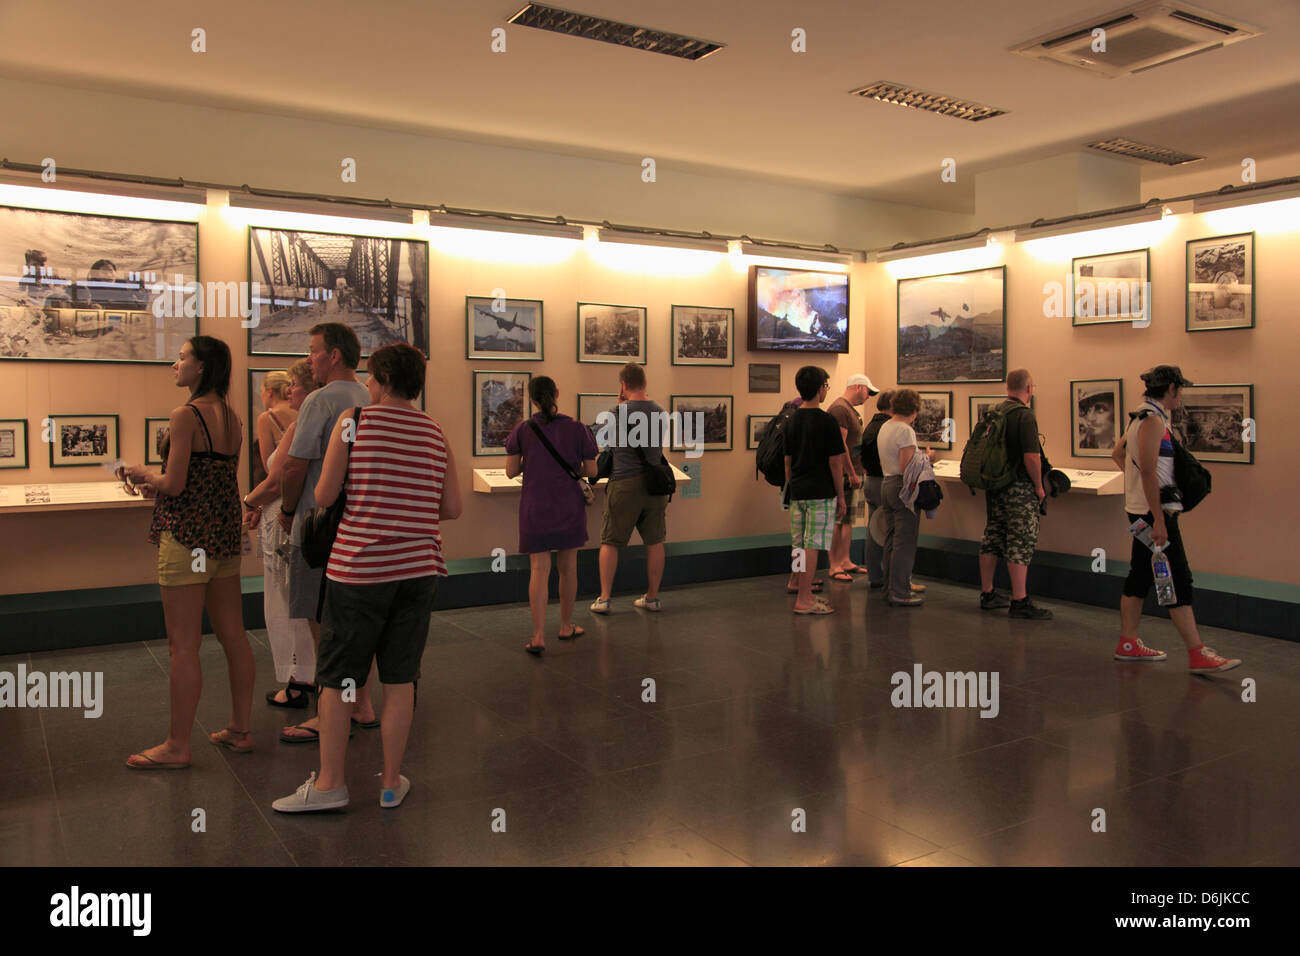 Requiem Exhibit, War Remnants Museum, Ho Chi Minh City (Saigon), Vietnam, Indochina, Southeast Asia, Asia - Stock Image